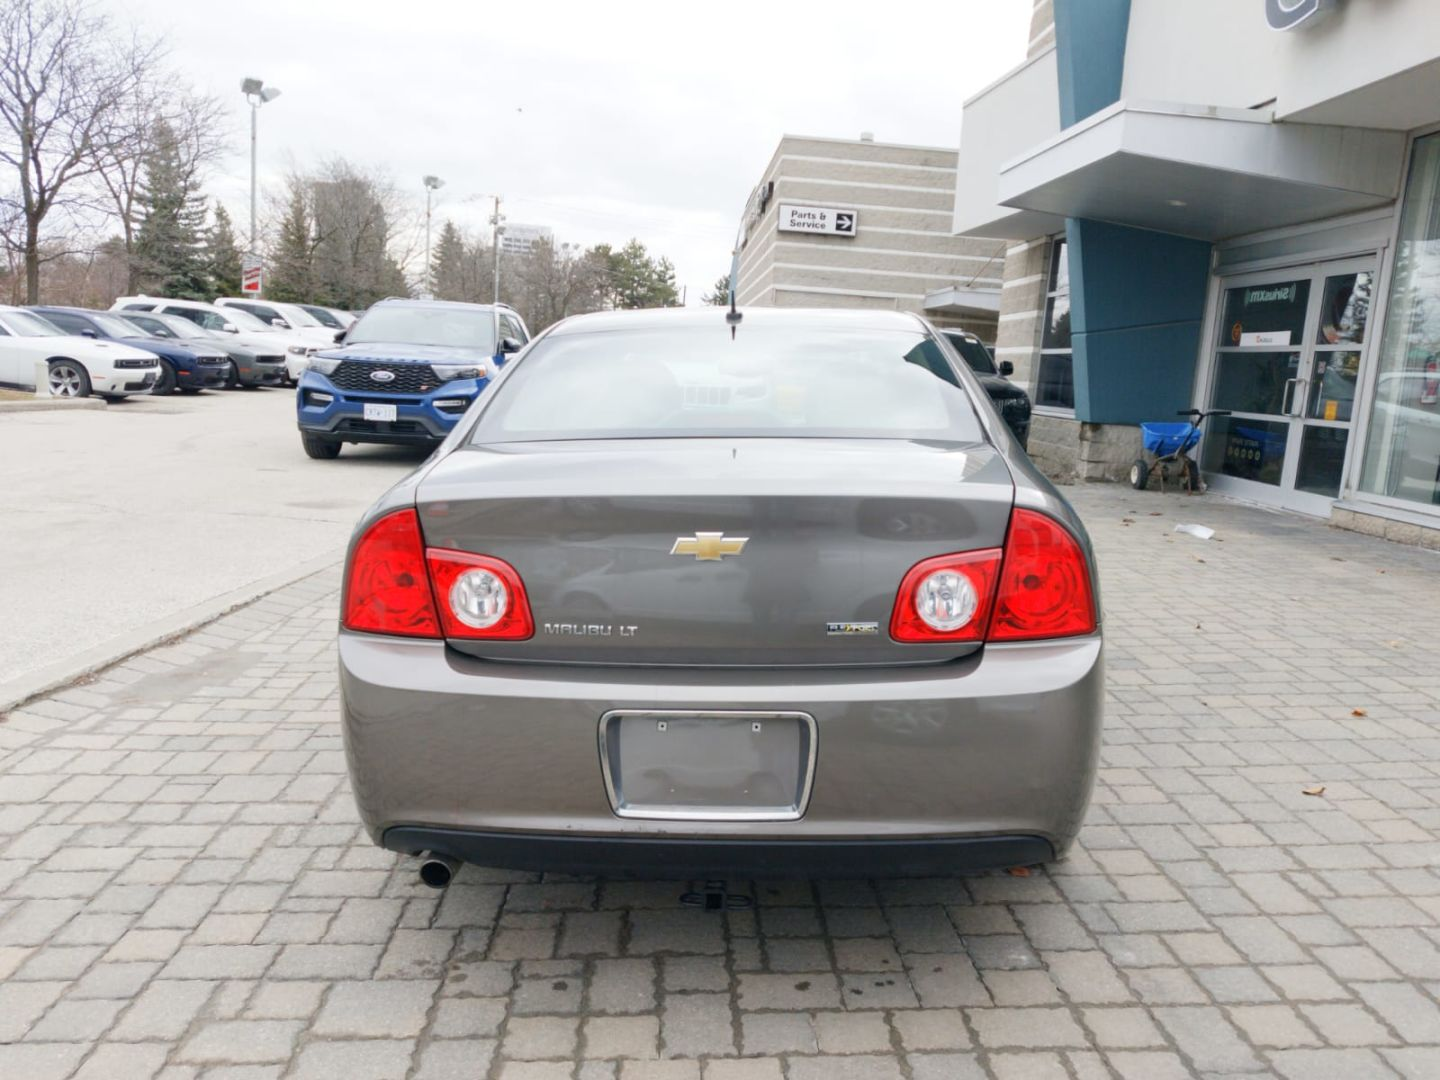 2010 Chevrolet Malibu LT Platinum Edition for sale in ,